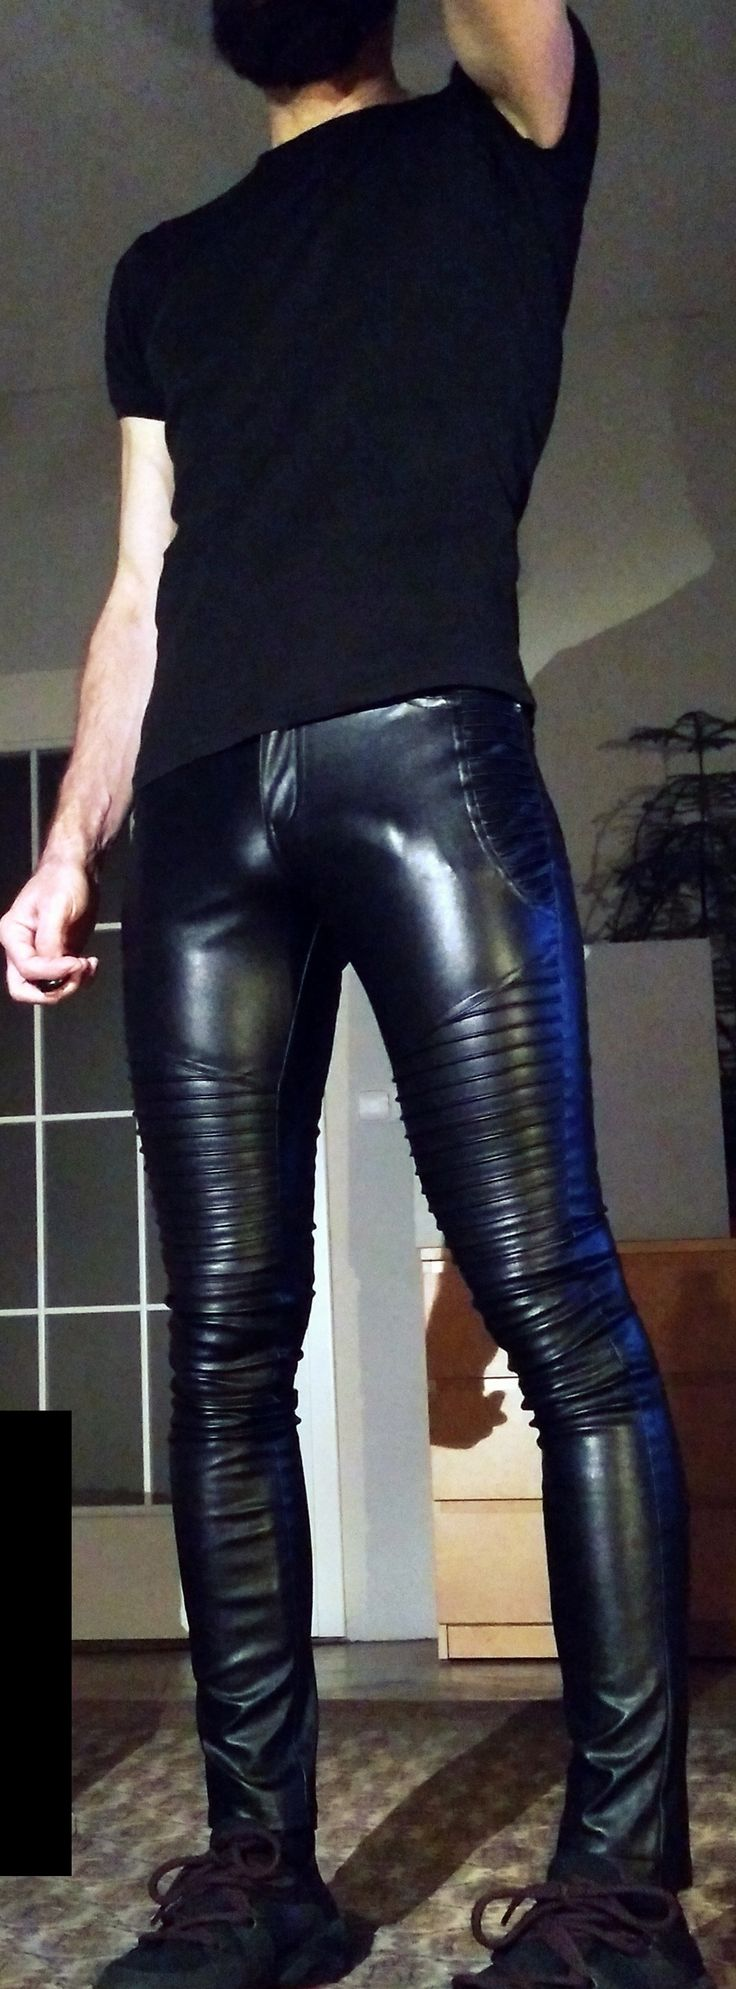 Why wear pants when you can wear sausage casing instead?